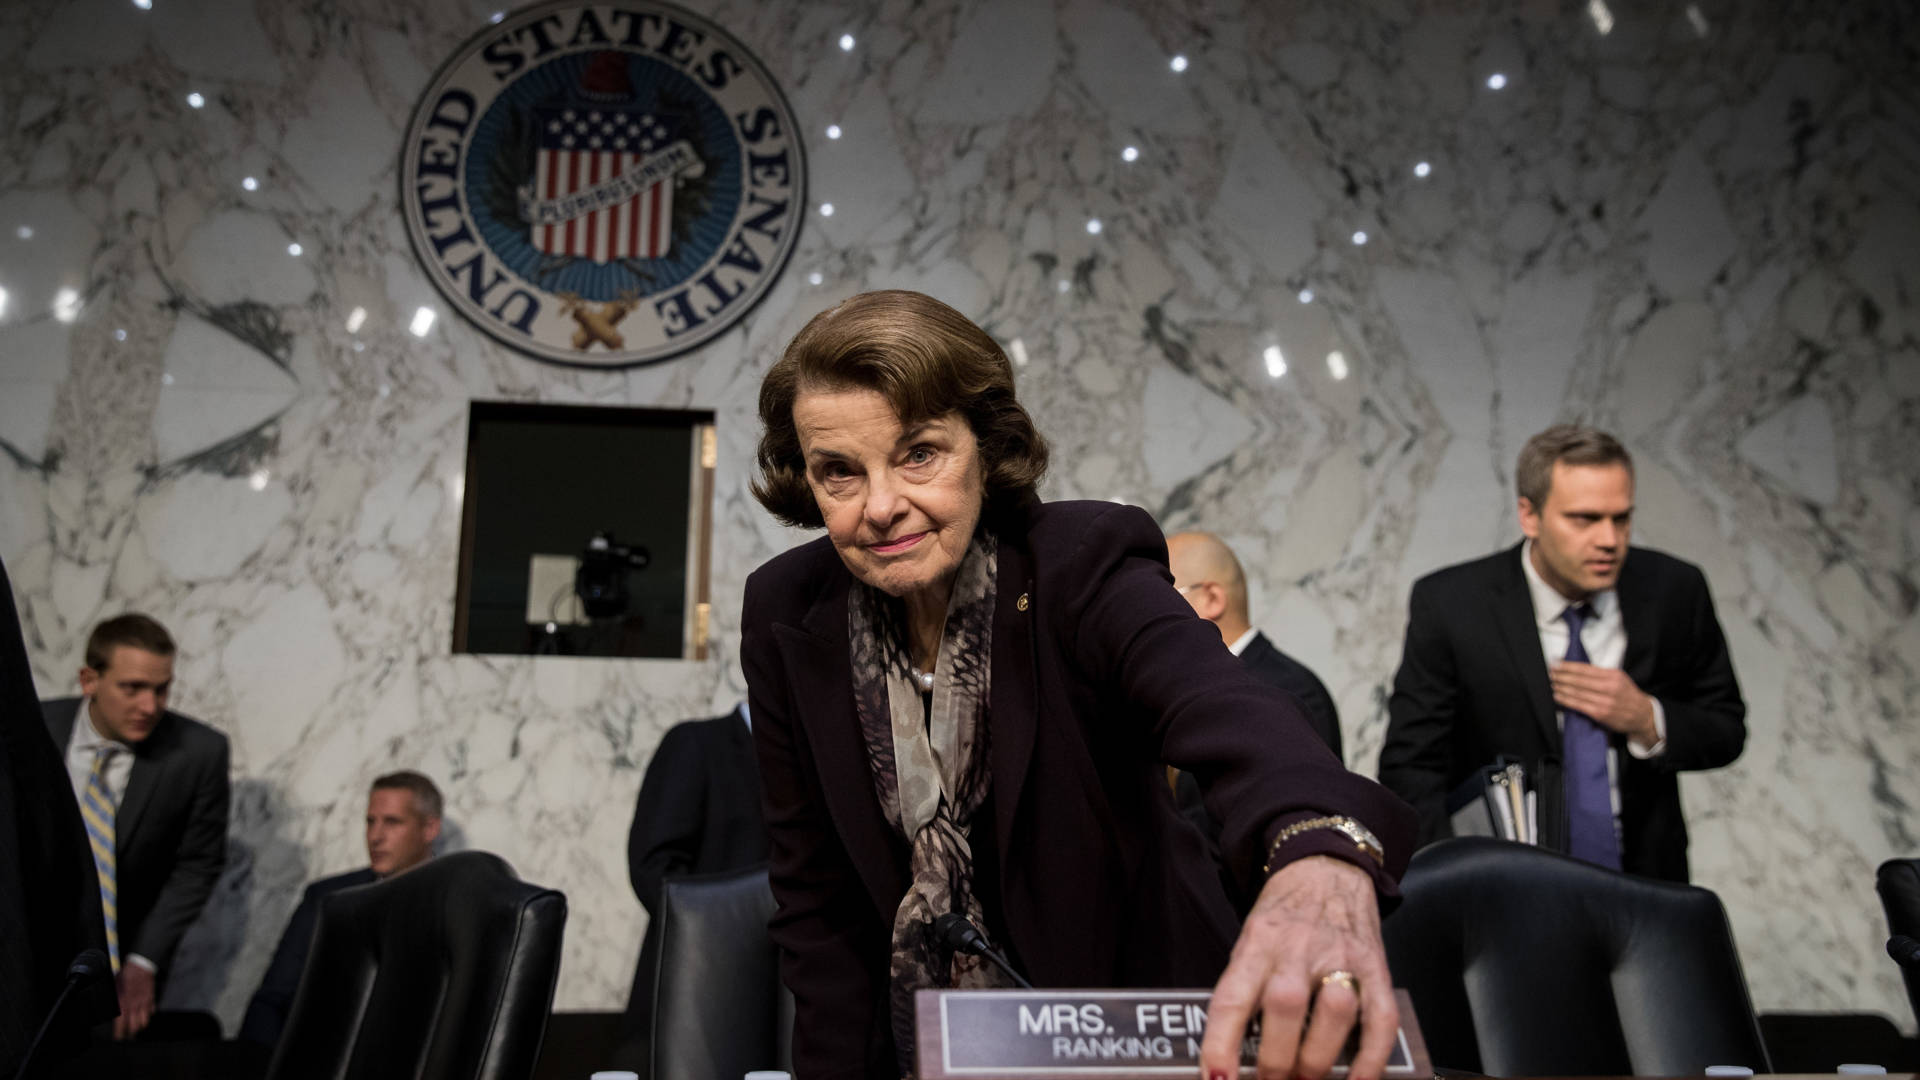 Ranking member Sen. Dianne Feinstein arrives for a Judiciary Committee hearing on Capitol Hill in December. Critics have raised questions about her age as she runs for re-election. Drew Angerer/Getty Images